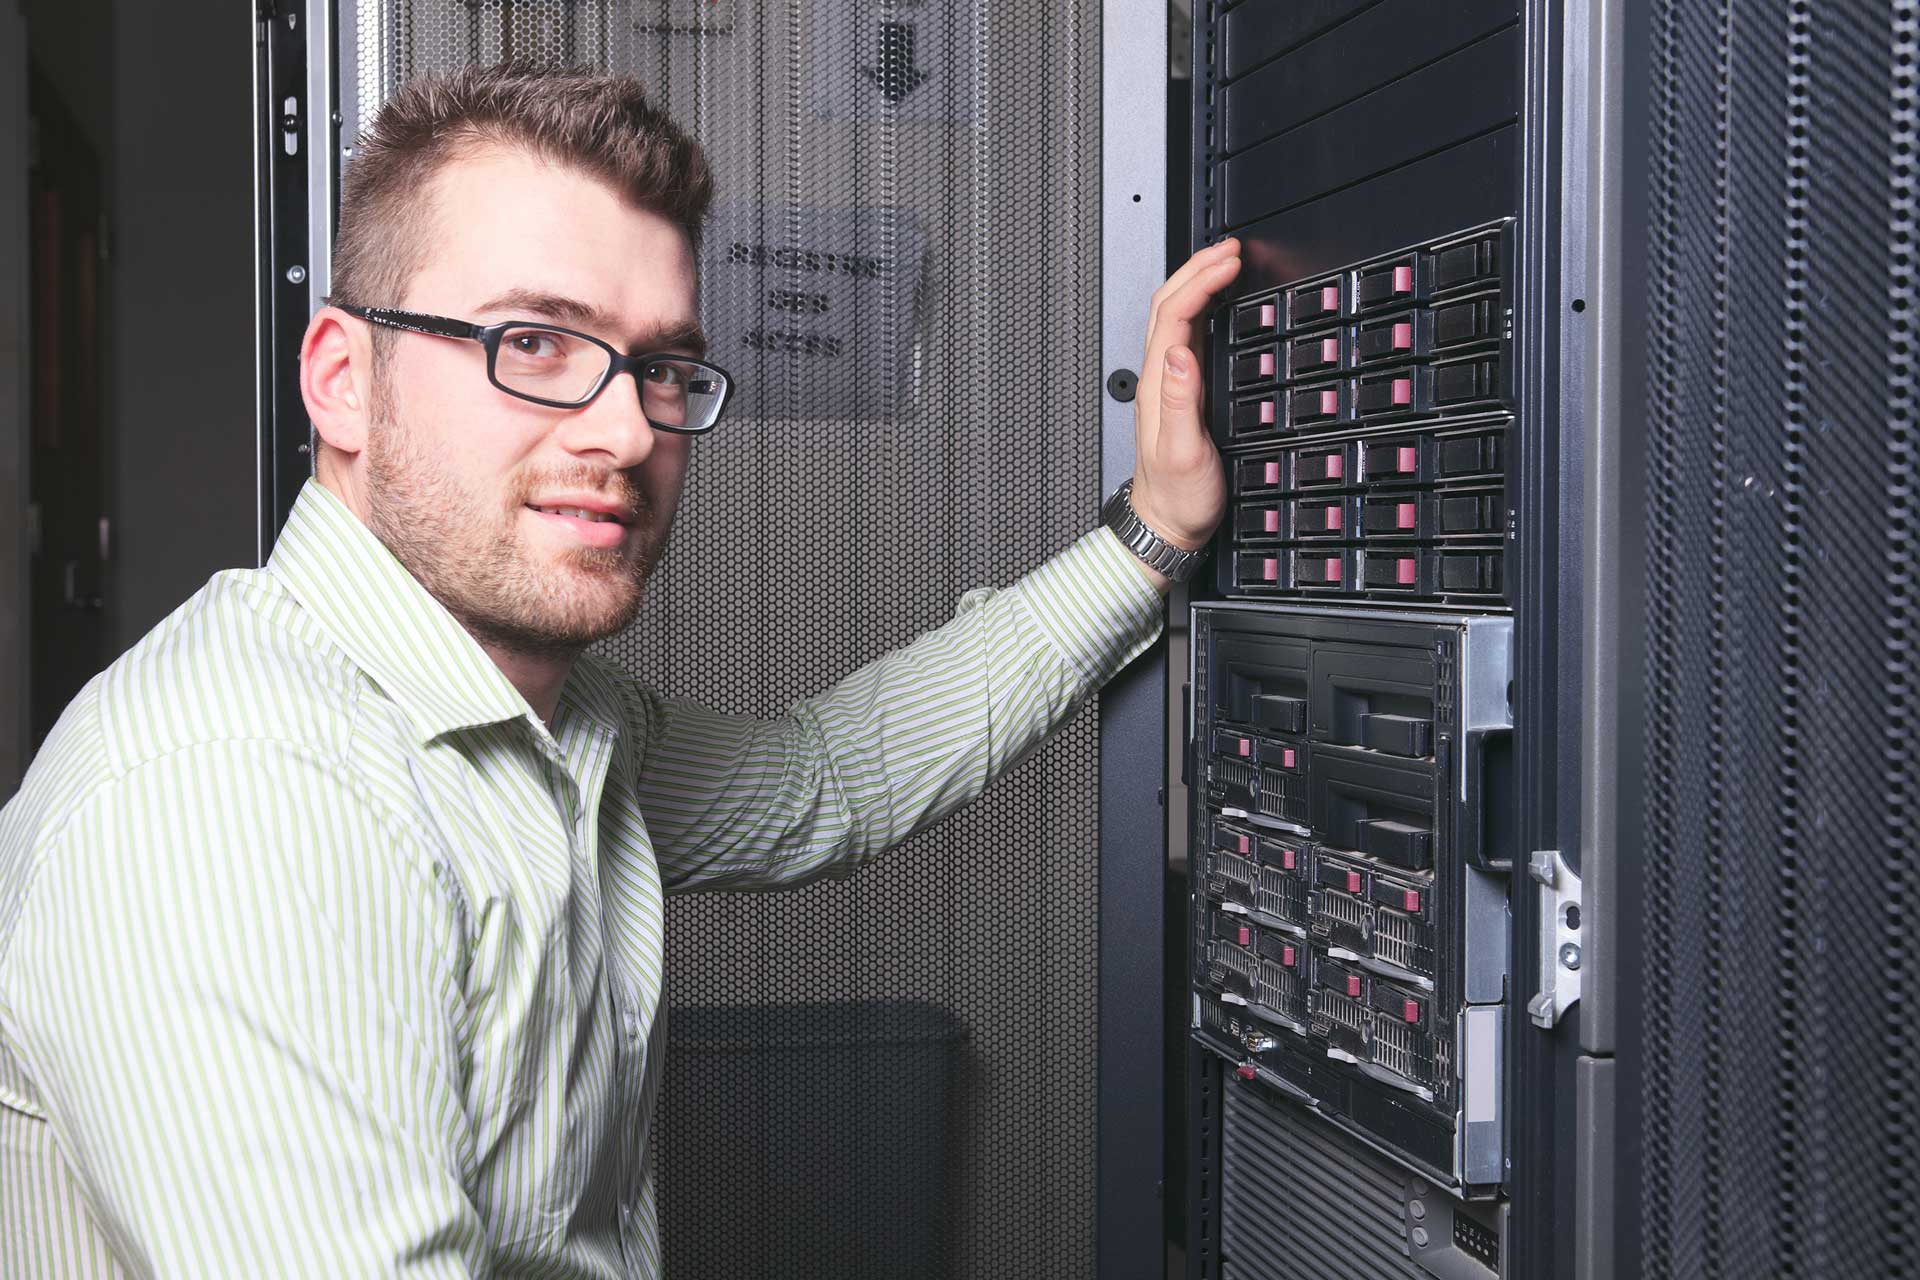 man-with-server